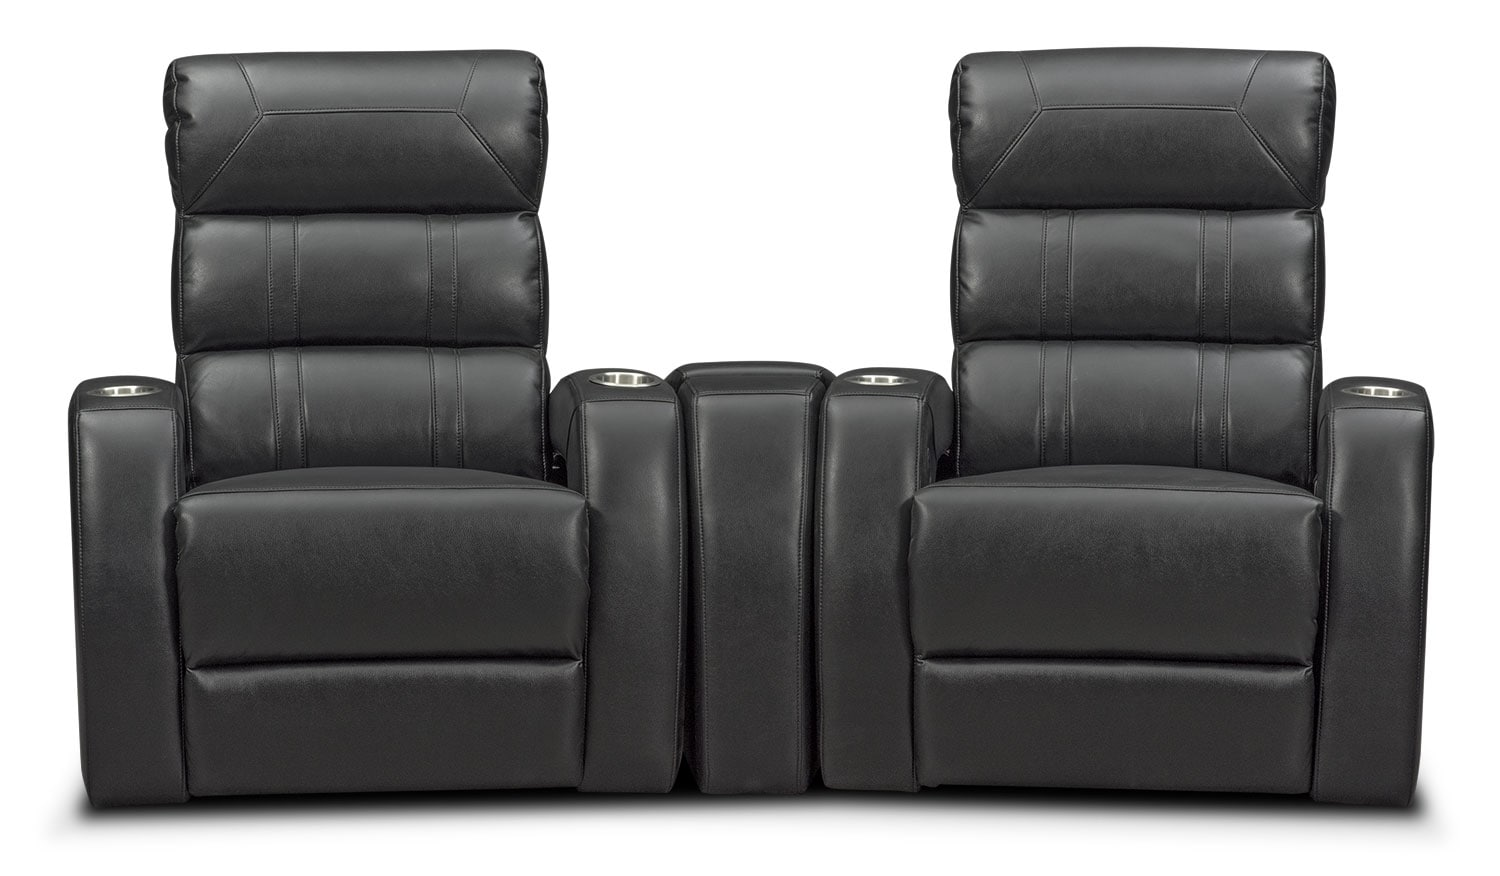 Living Room Furniture - Bravo 3-Piece Power Reclining Home Theater Sectional